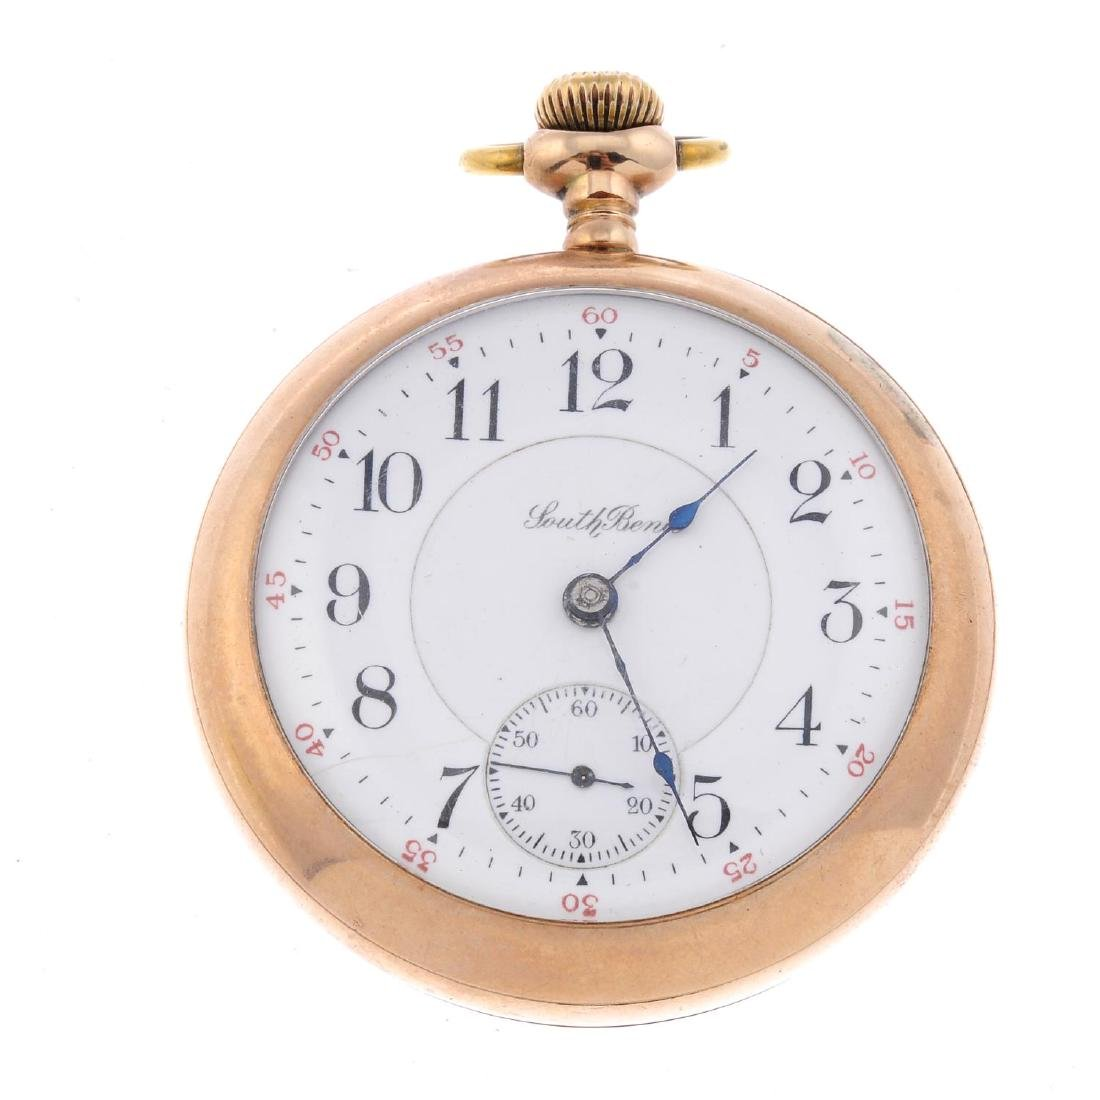 An open face pocket watch by South Bend Watch Co. Gold